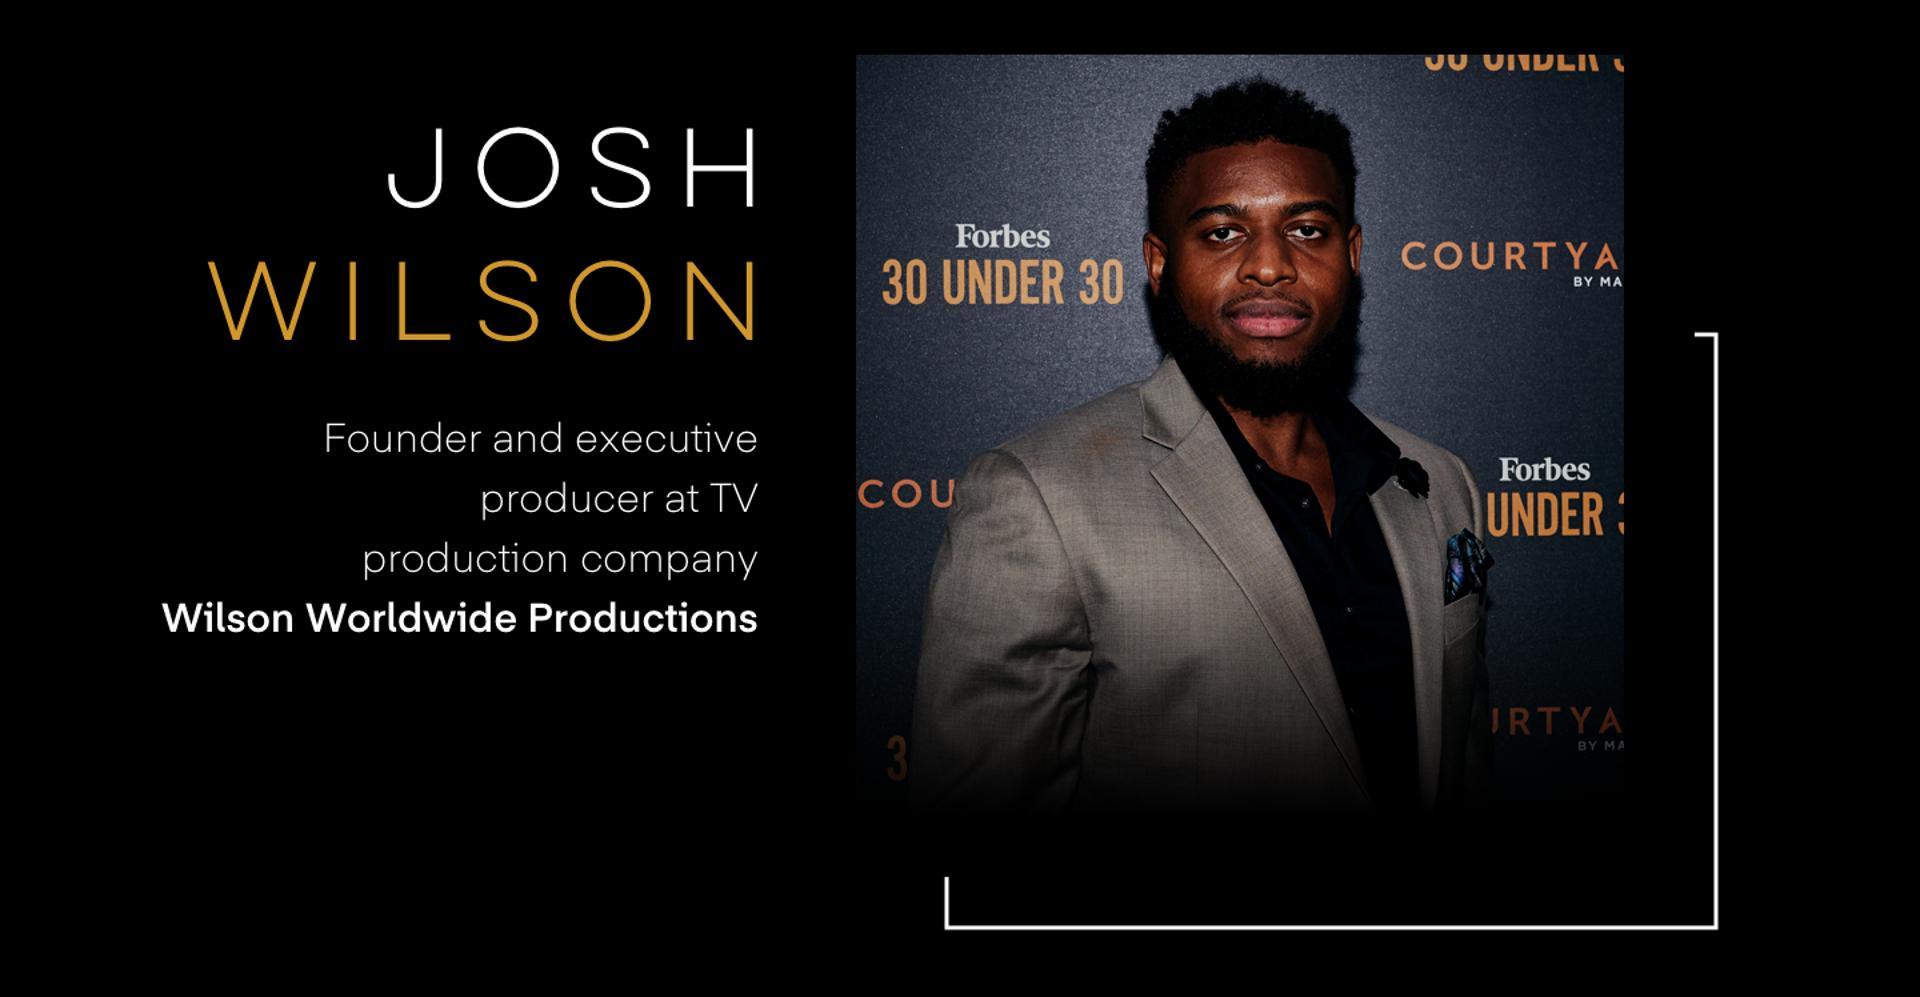 Josh Wilson: Founder and executive producer at TV production company  